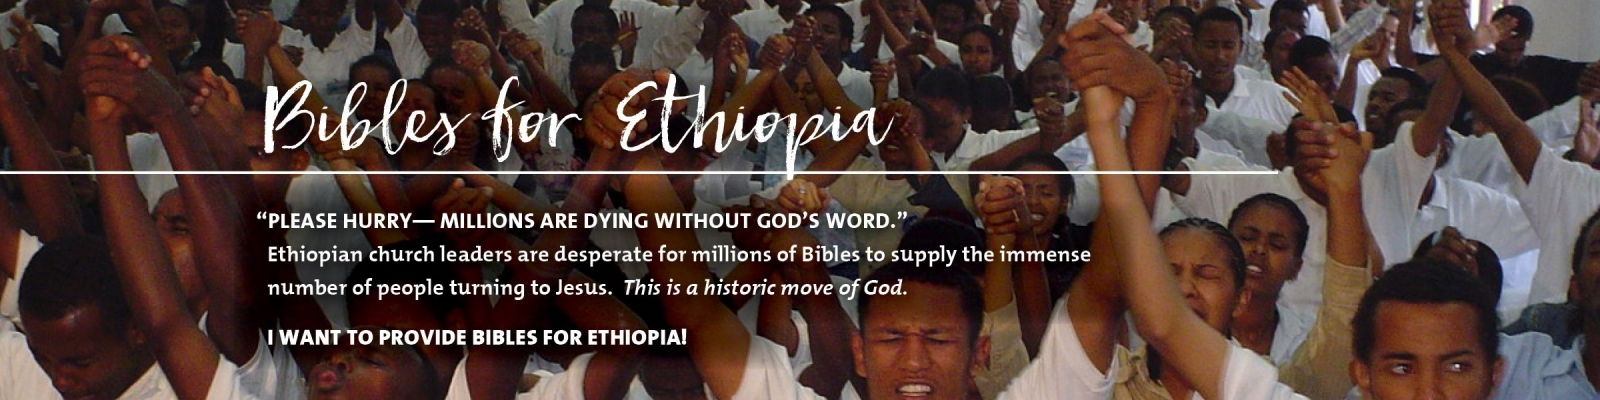 Bibles immense need hunger for God revival Ethiopia